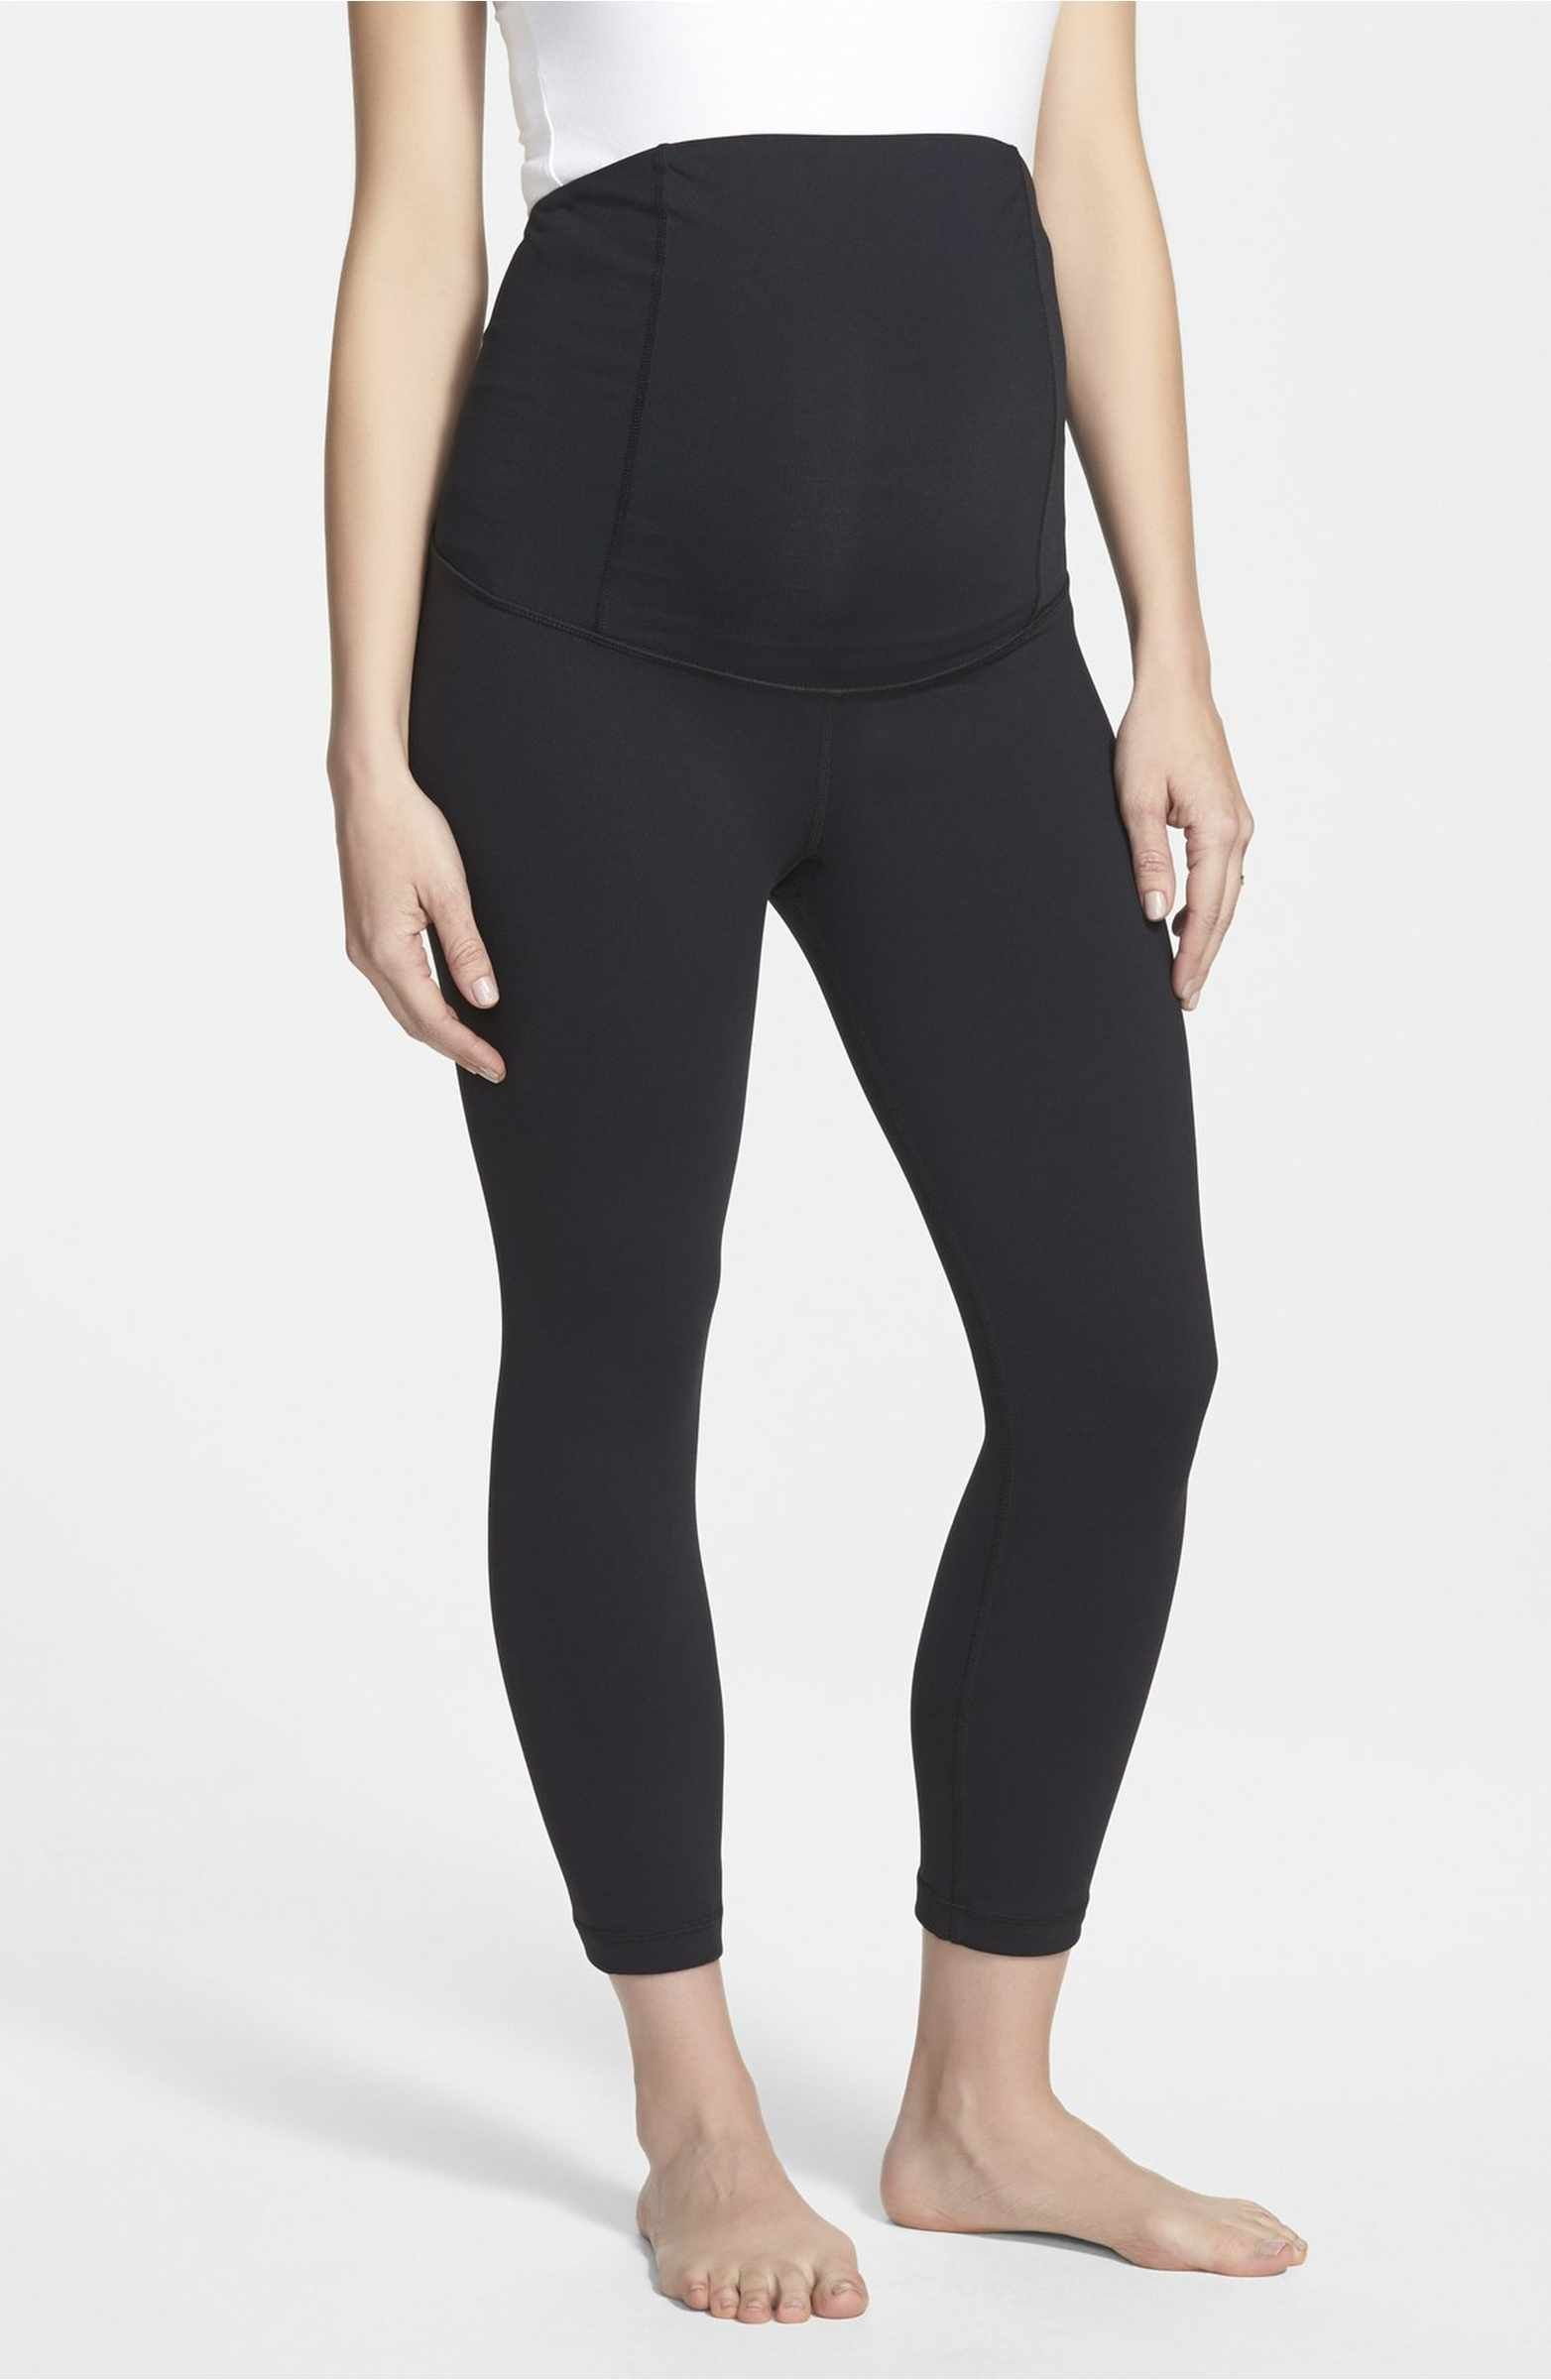 4a57e028a4fa5 Main Image - Ingrid & Isabel® Active Maternity Capri Pants with Crossover  Panel